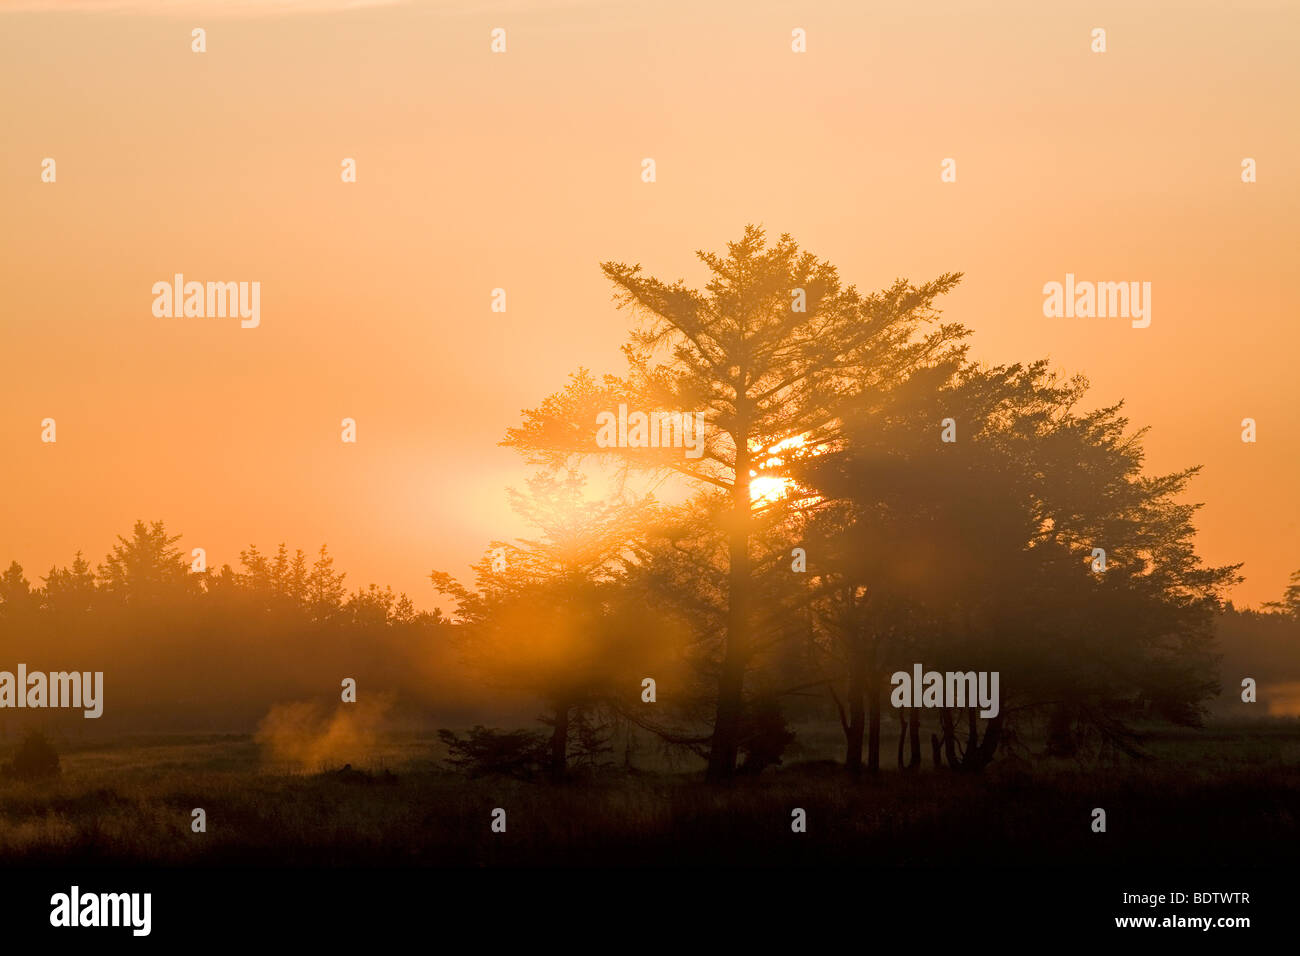 Rotfichten im Morgenlicht / Norway Spruce in the morning sun / Picea abies - Stock Image